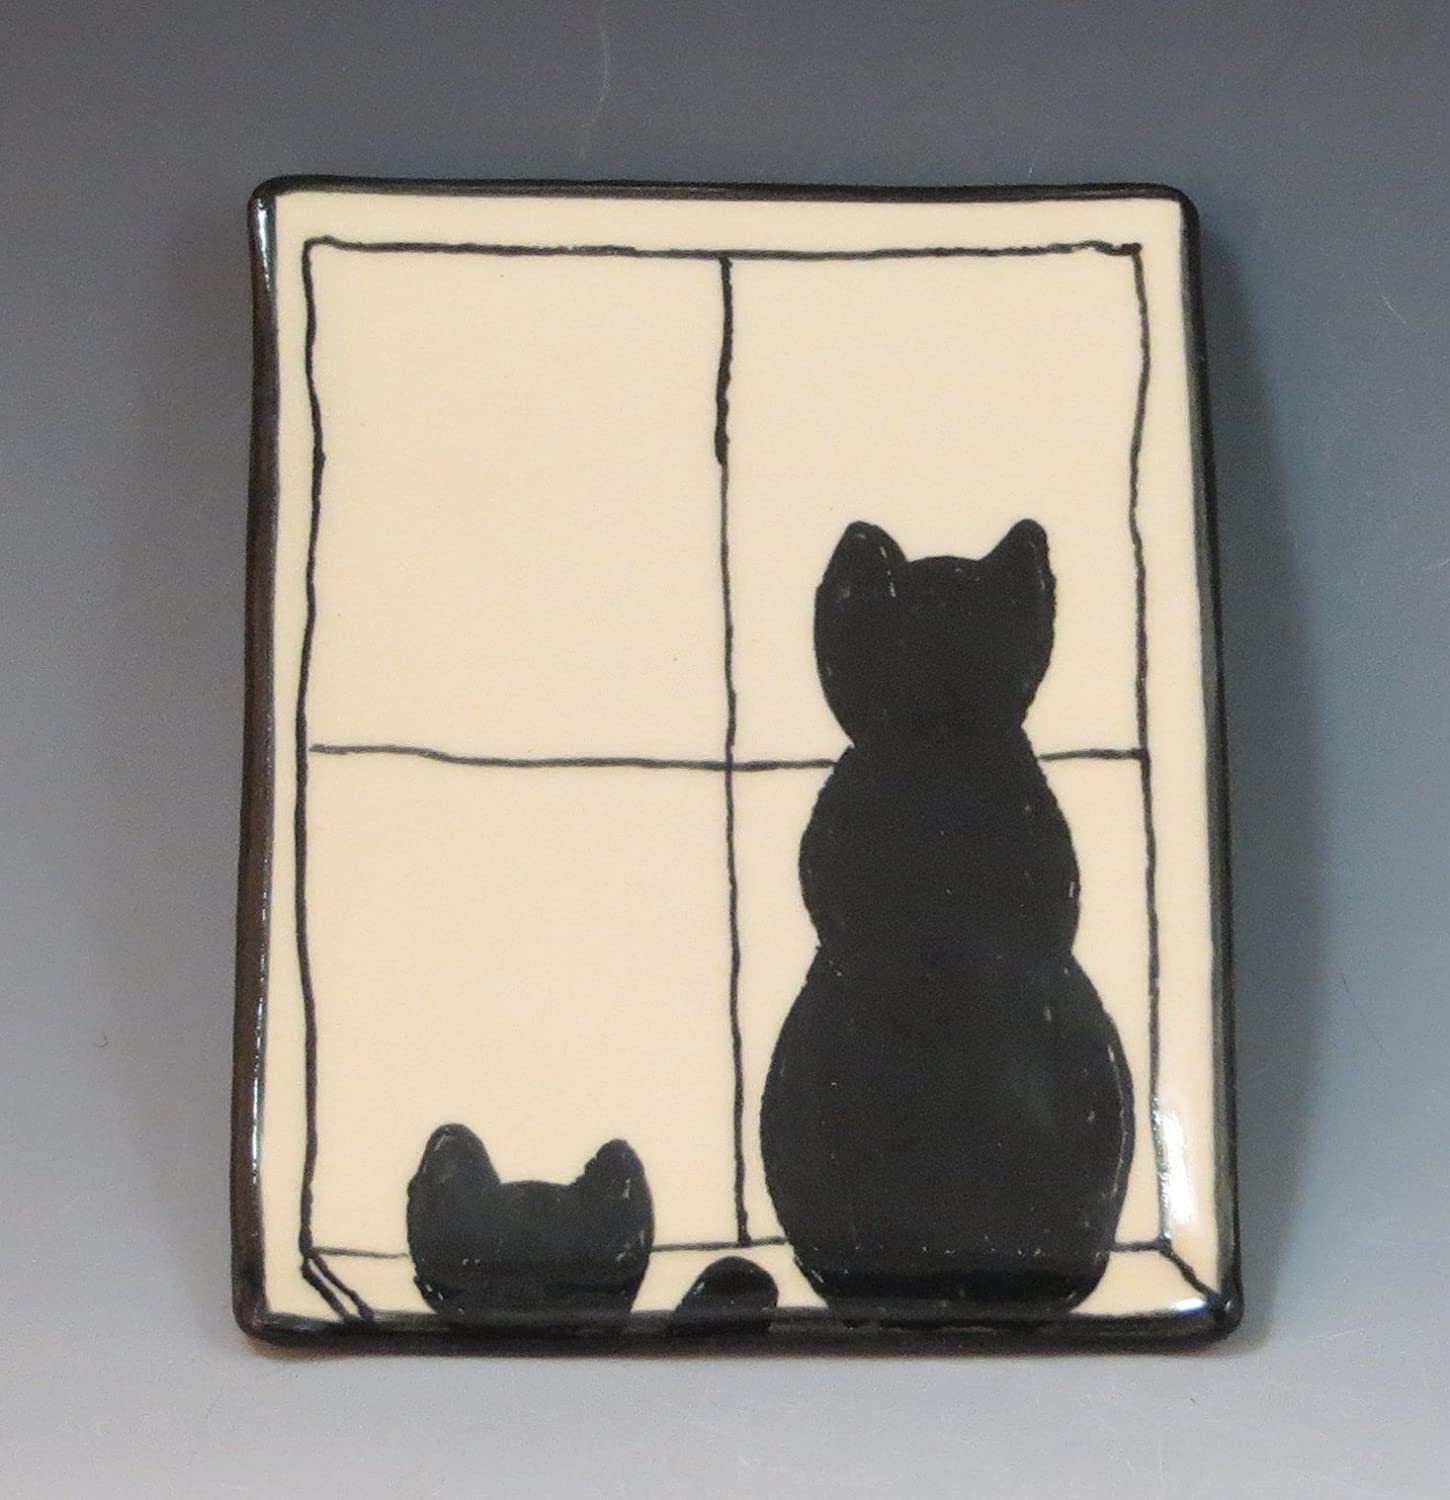 Handmade Ceramic Soap Dish with Black Cats in Window